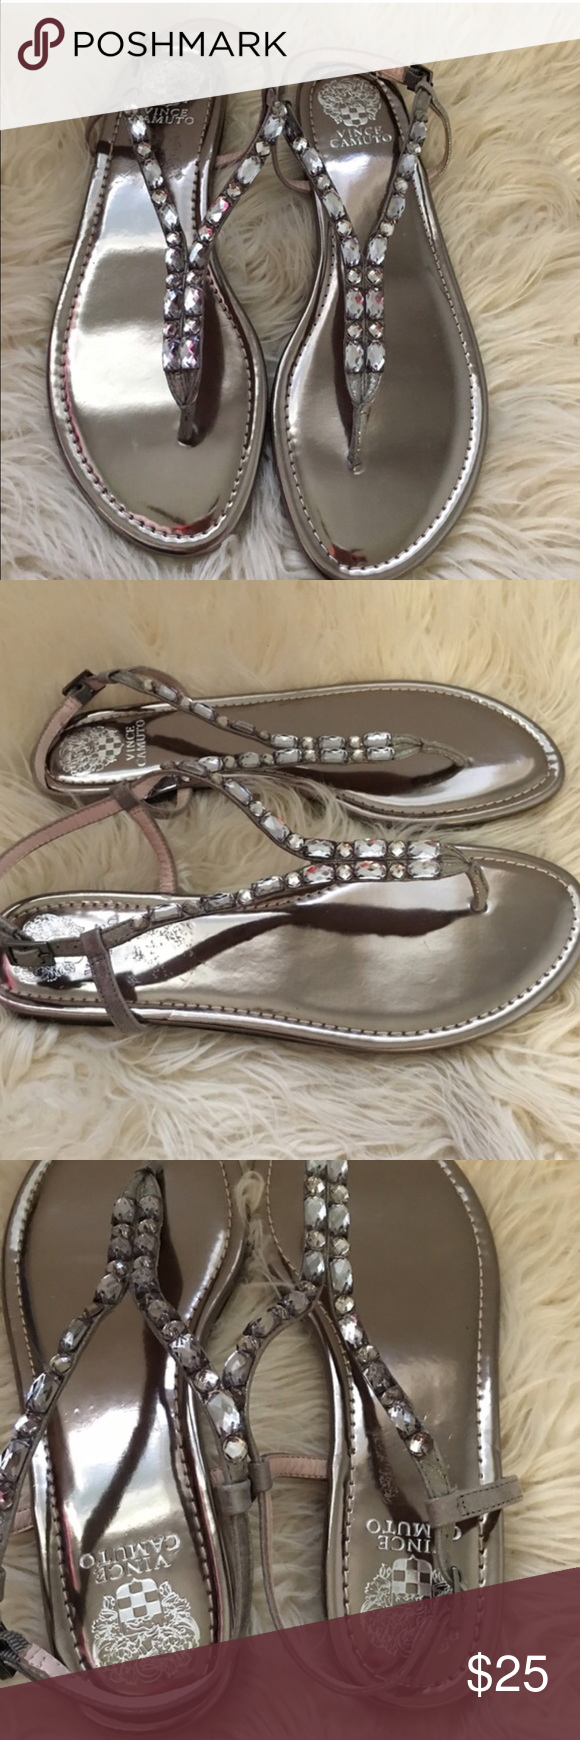 NEW Vince Camuto Silver Macha Embellished Sandals NEW Vince Camuto Silver Macha Embellished Sandals. Size 11. Gorgeous shoes & easy to style! Thank you for looking at my listing. Please feel free to comment with any questions (no trades/modeling).  •Condition: BNWOT  ✨Bundle and save!✨10% off 2 items, 20% off 3 items & 30% off 5+ items! C1 Vince Camuto Shoes Sandals